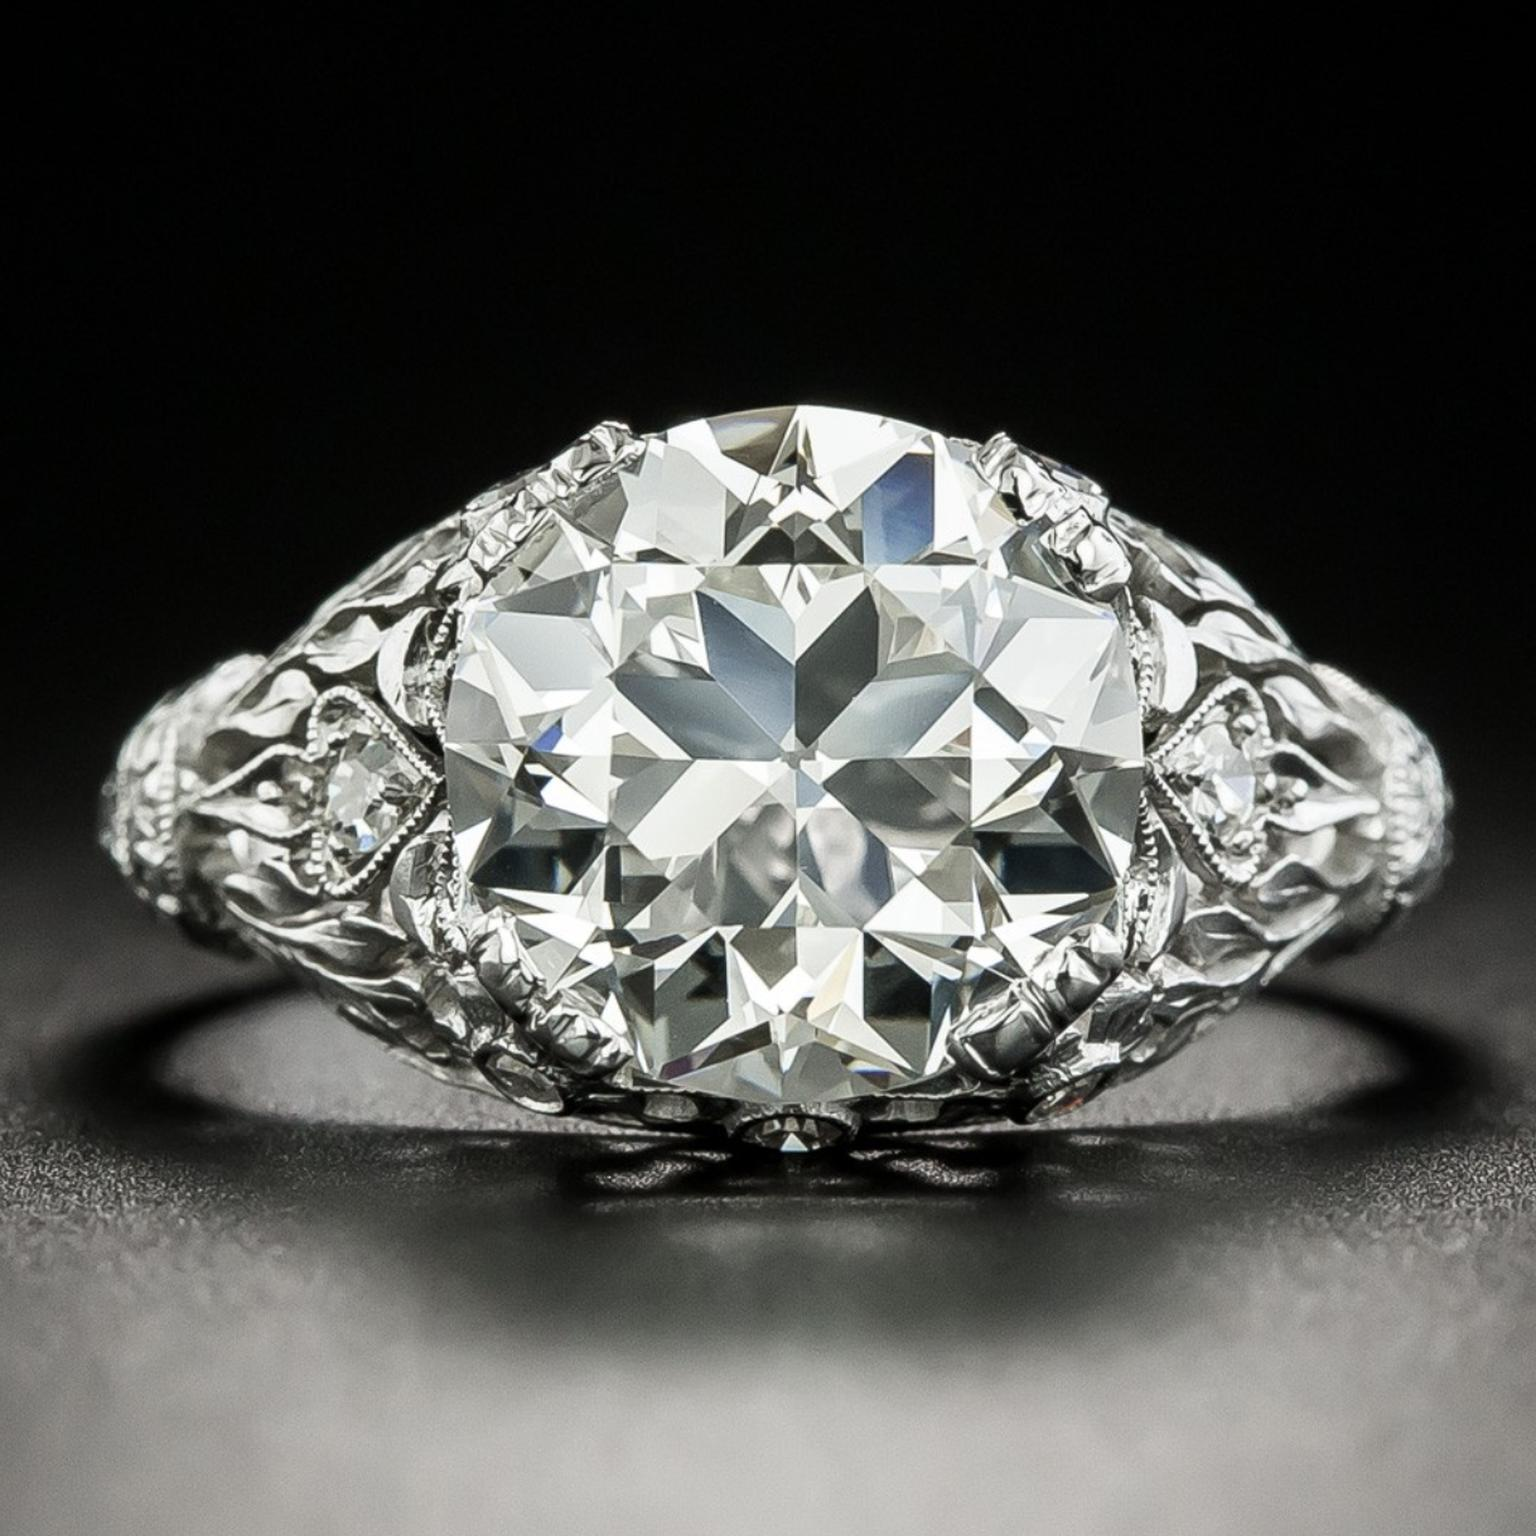 TIFFANY & CO. EARLY-ART DECO ENGAGEMENT RING